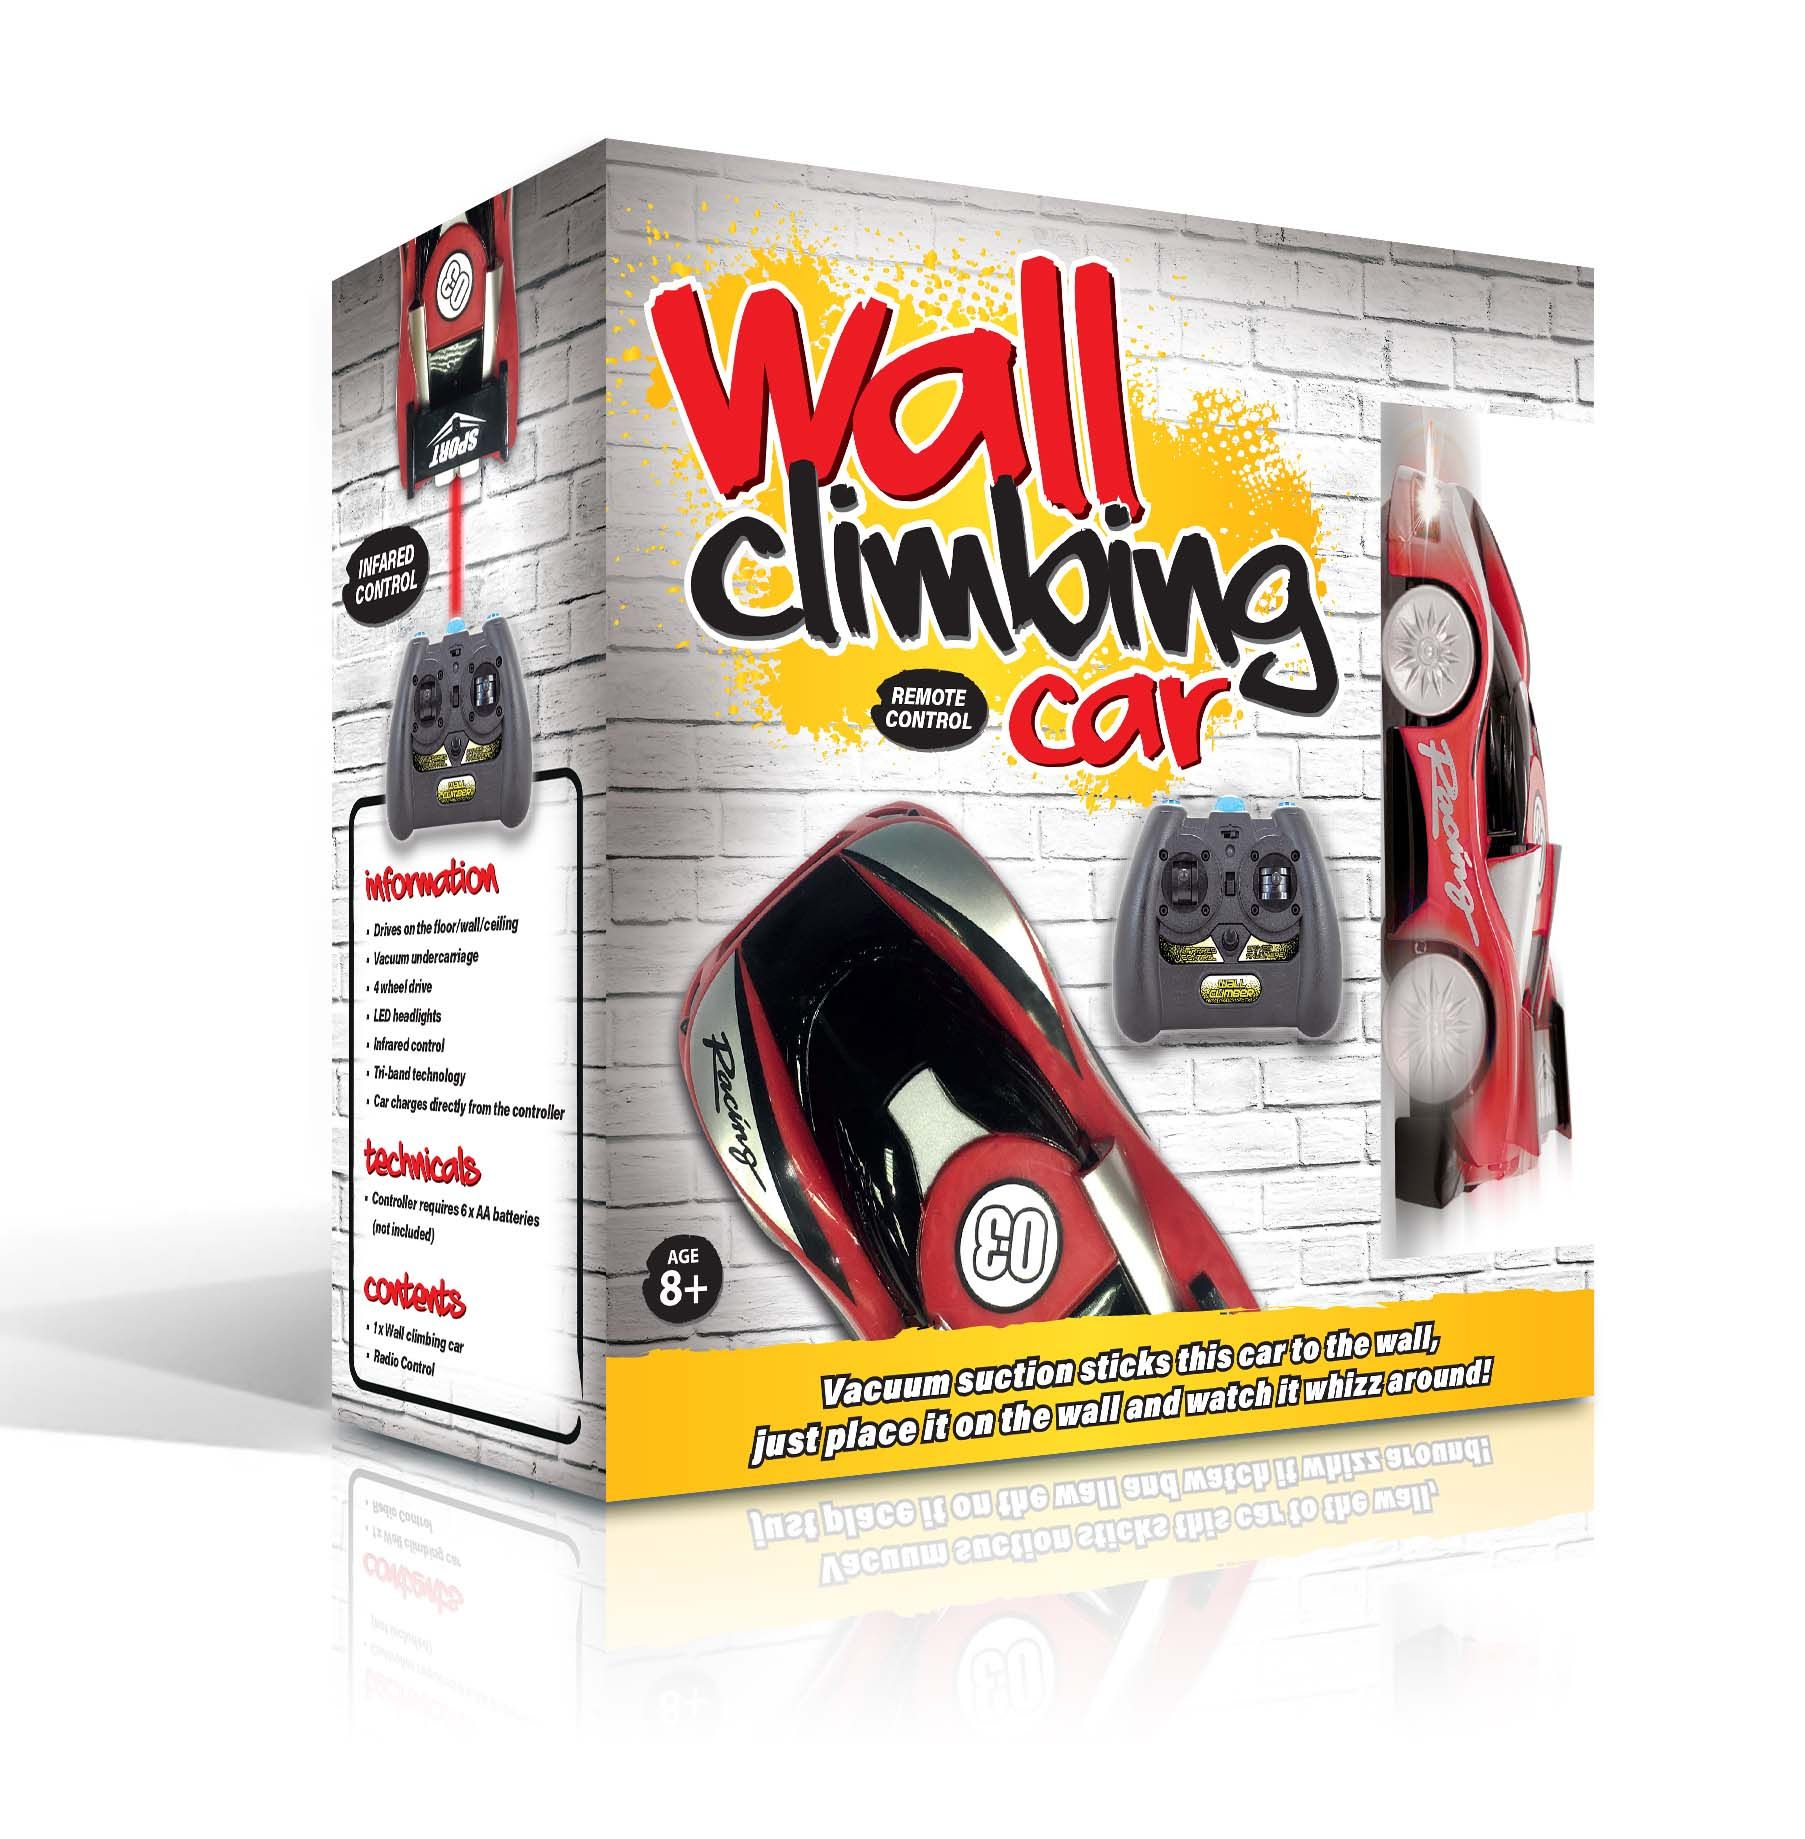 WALL CLIMBING CAR! Follow the link for more info! Remote